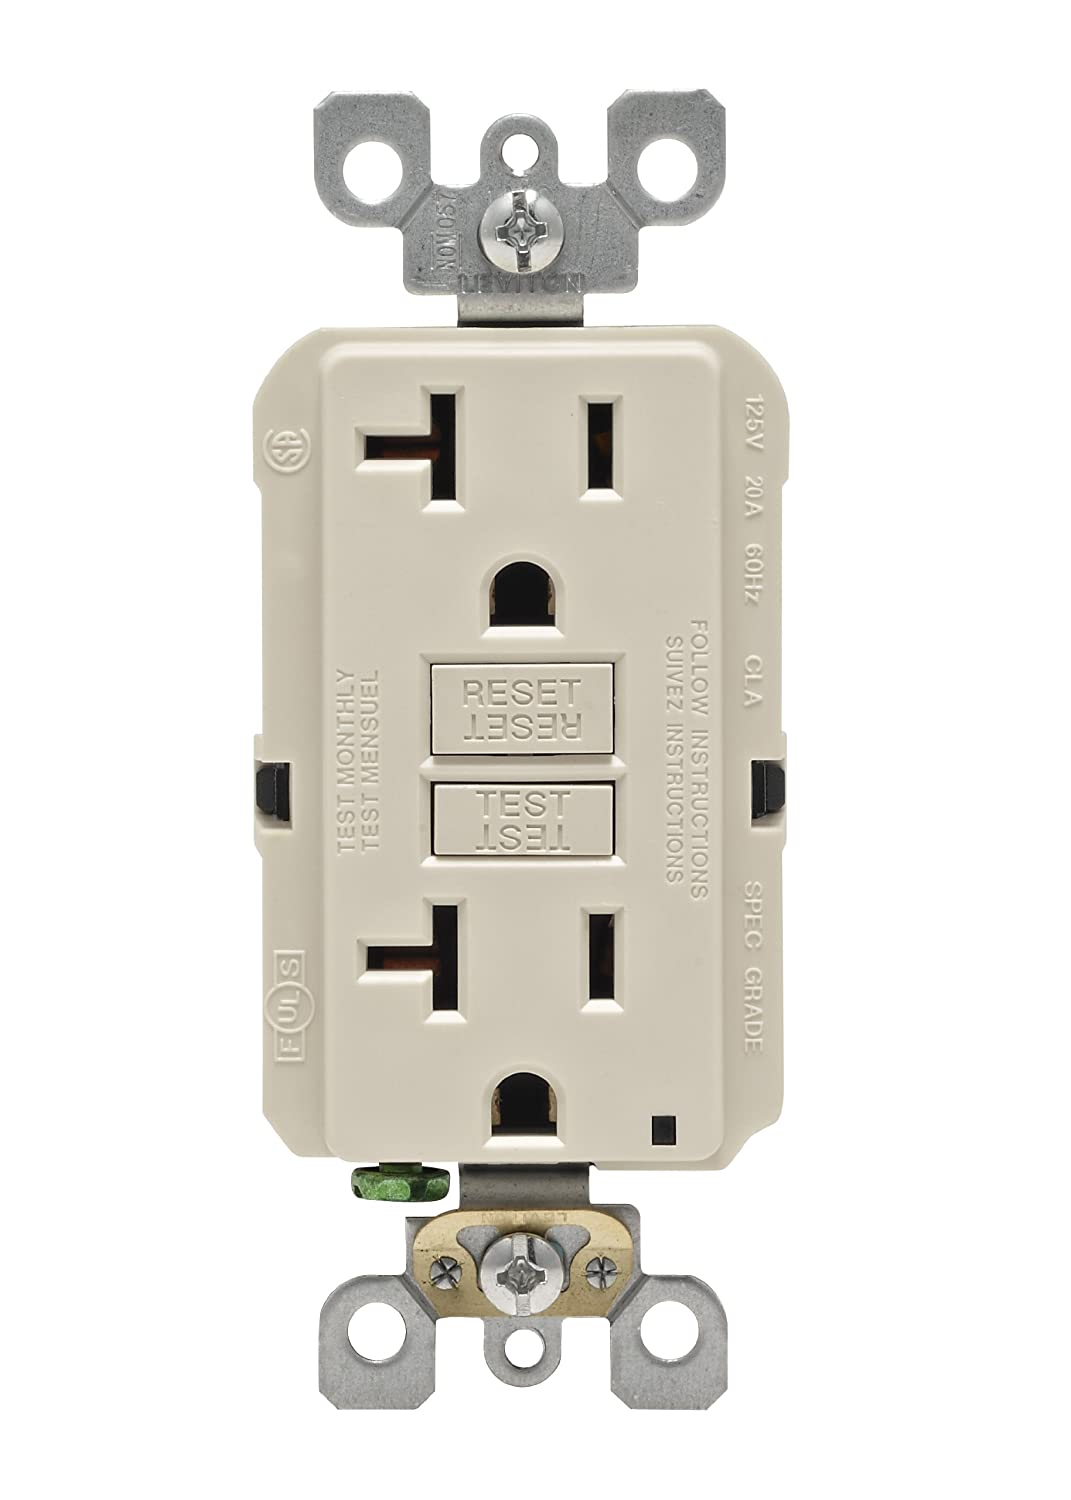 Leviton N7599-W 15-Amp 125-Volt SmartLock Pro Slim Non-Tamper-Resistant  Duplex GFCI Receptacle, White - Ground Fault Circuit Interrupter Outlets -  Amazon. ...